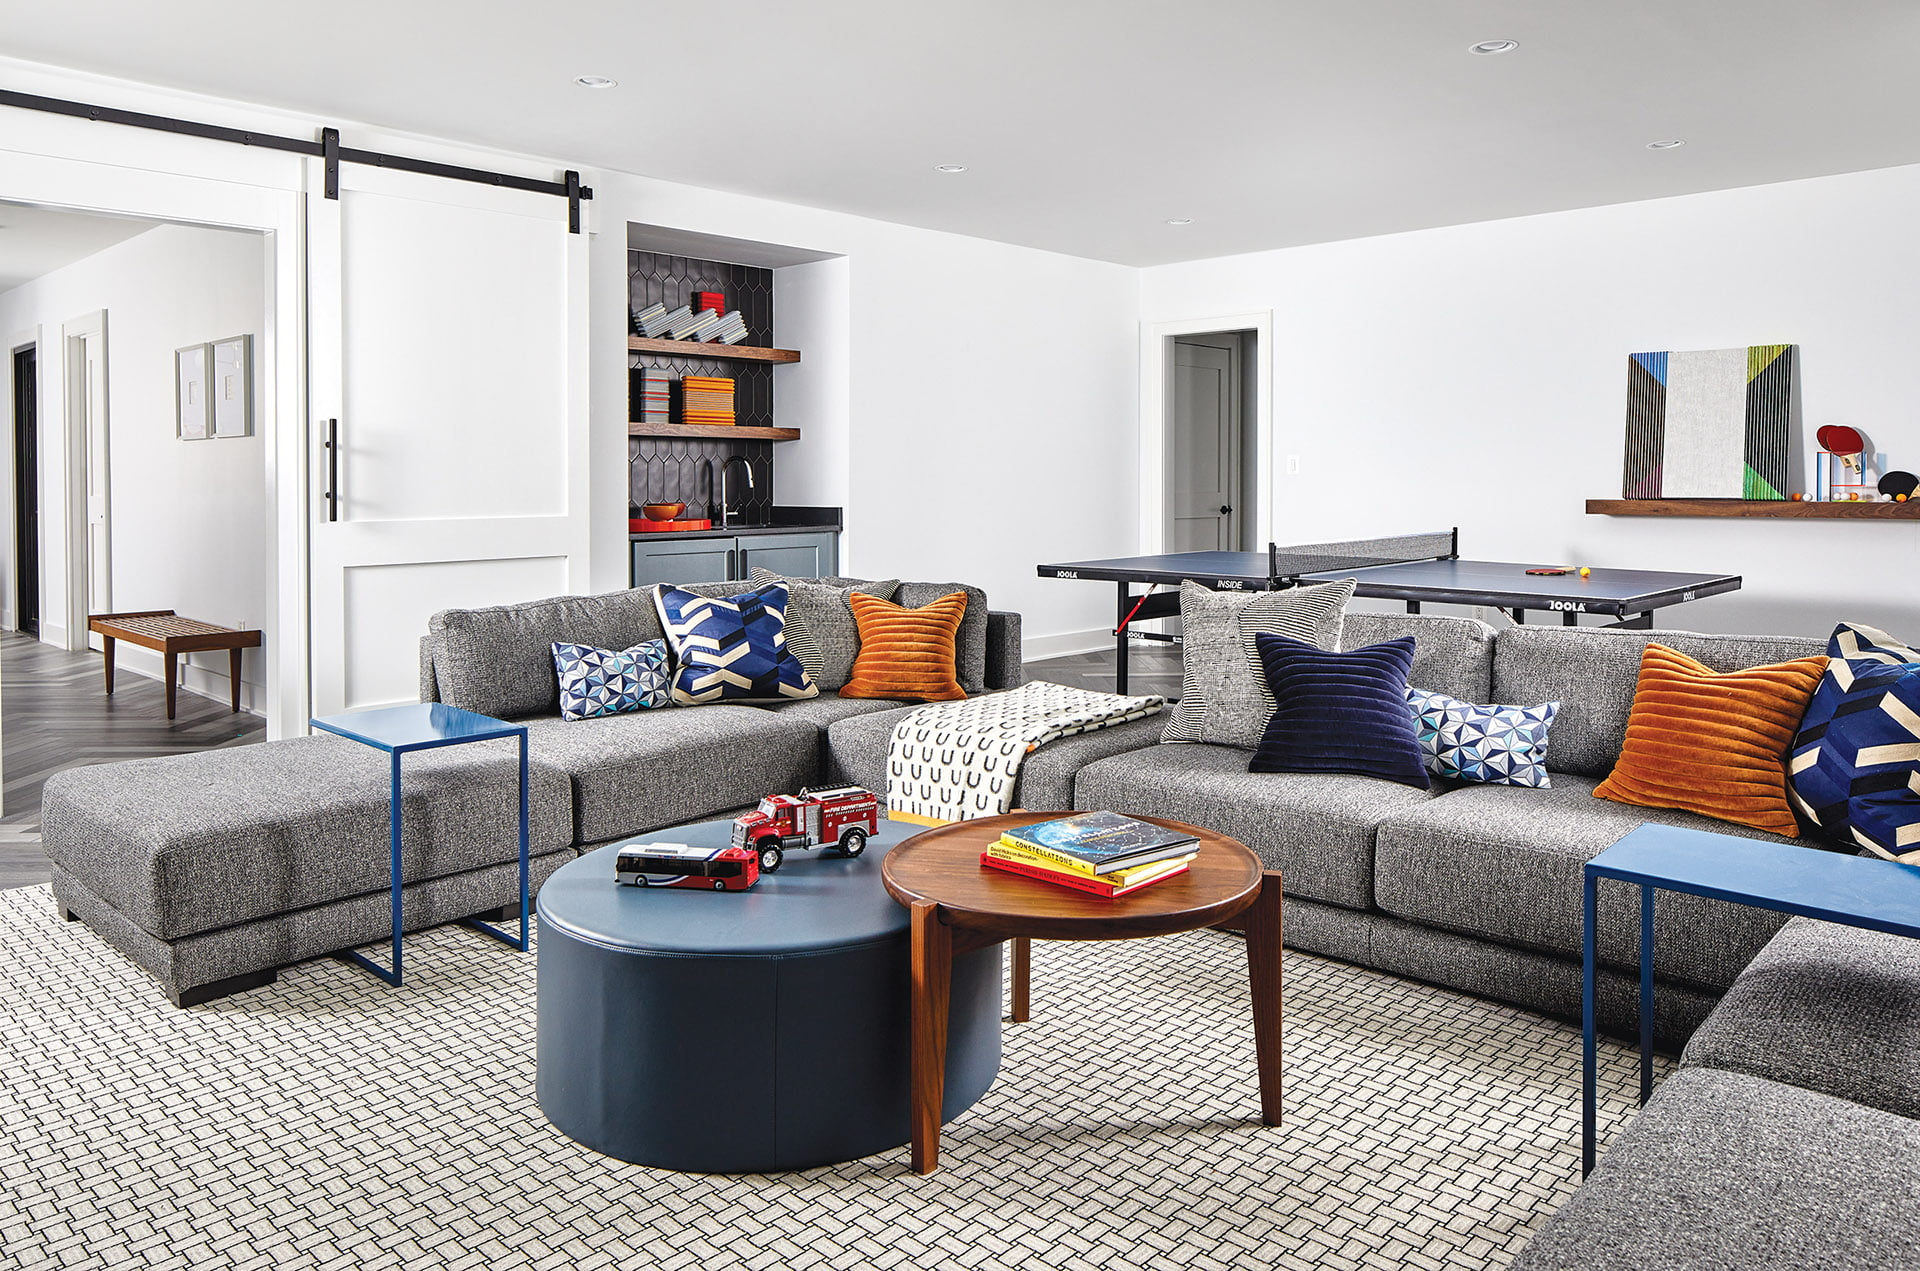 Play area with sectional sofa, tables and ottoman from Room & Board